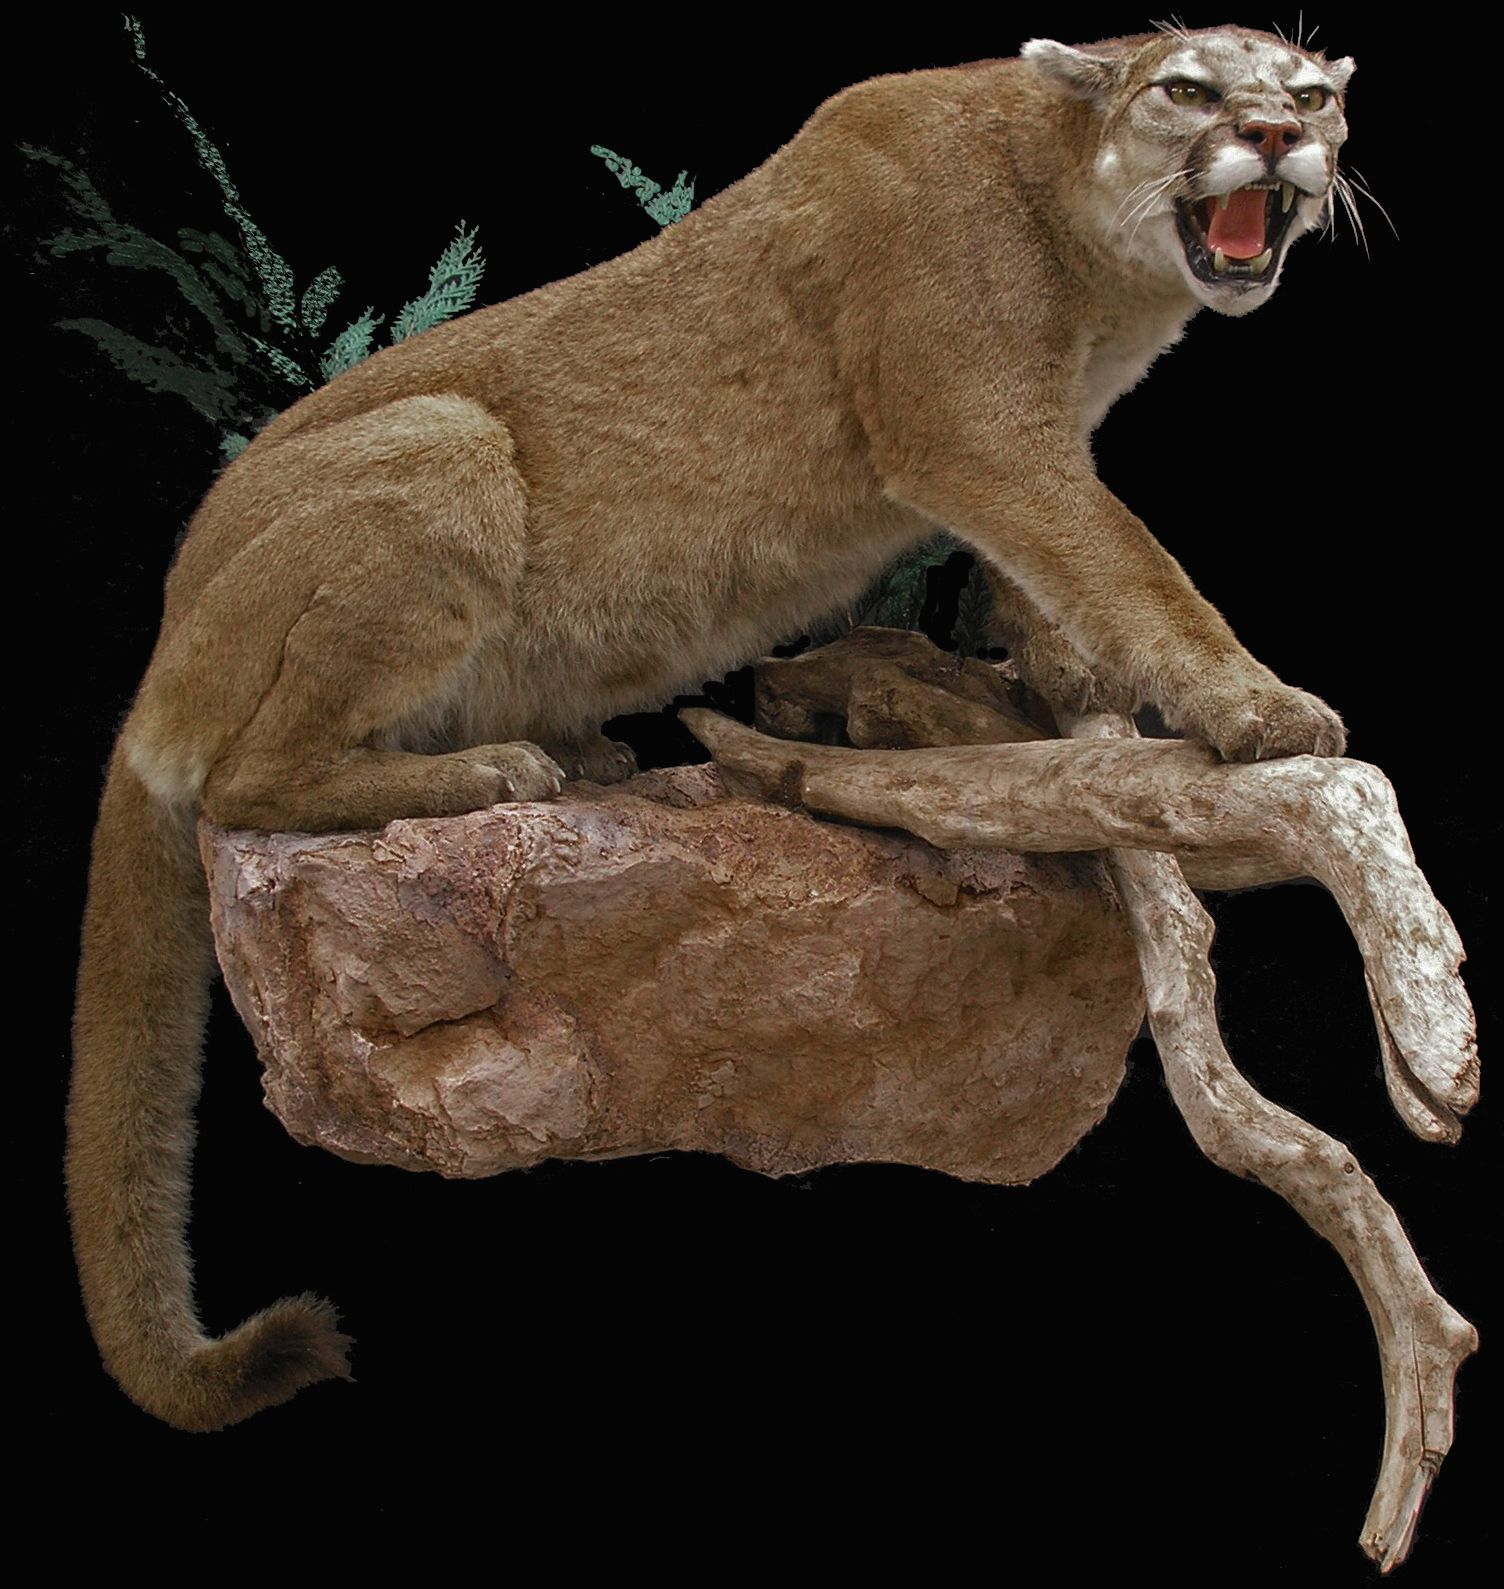 mountain lion taxidermy mount - Google Search | Hunting | Pinterest ...